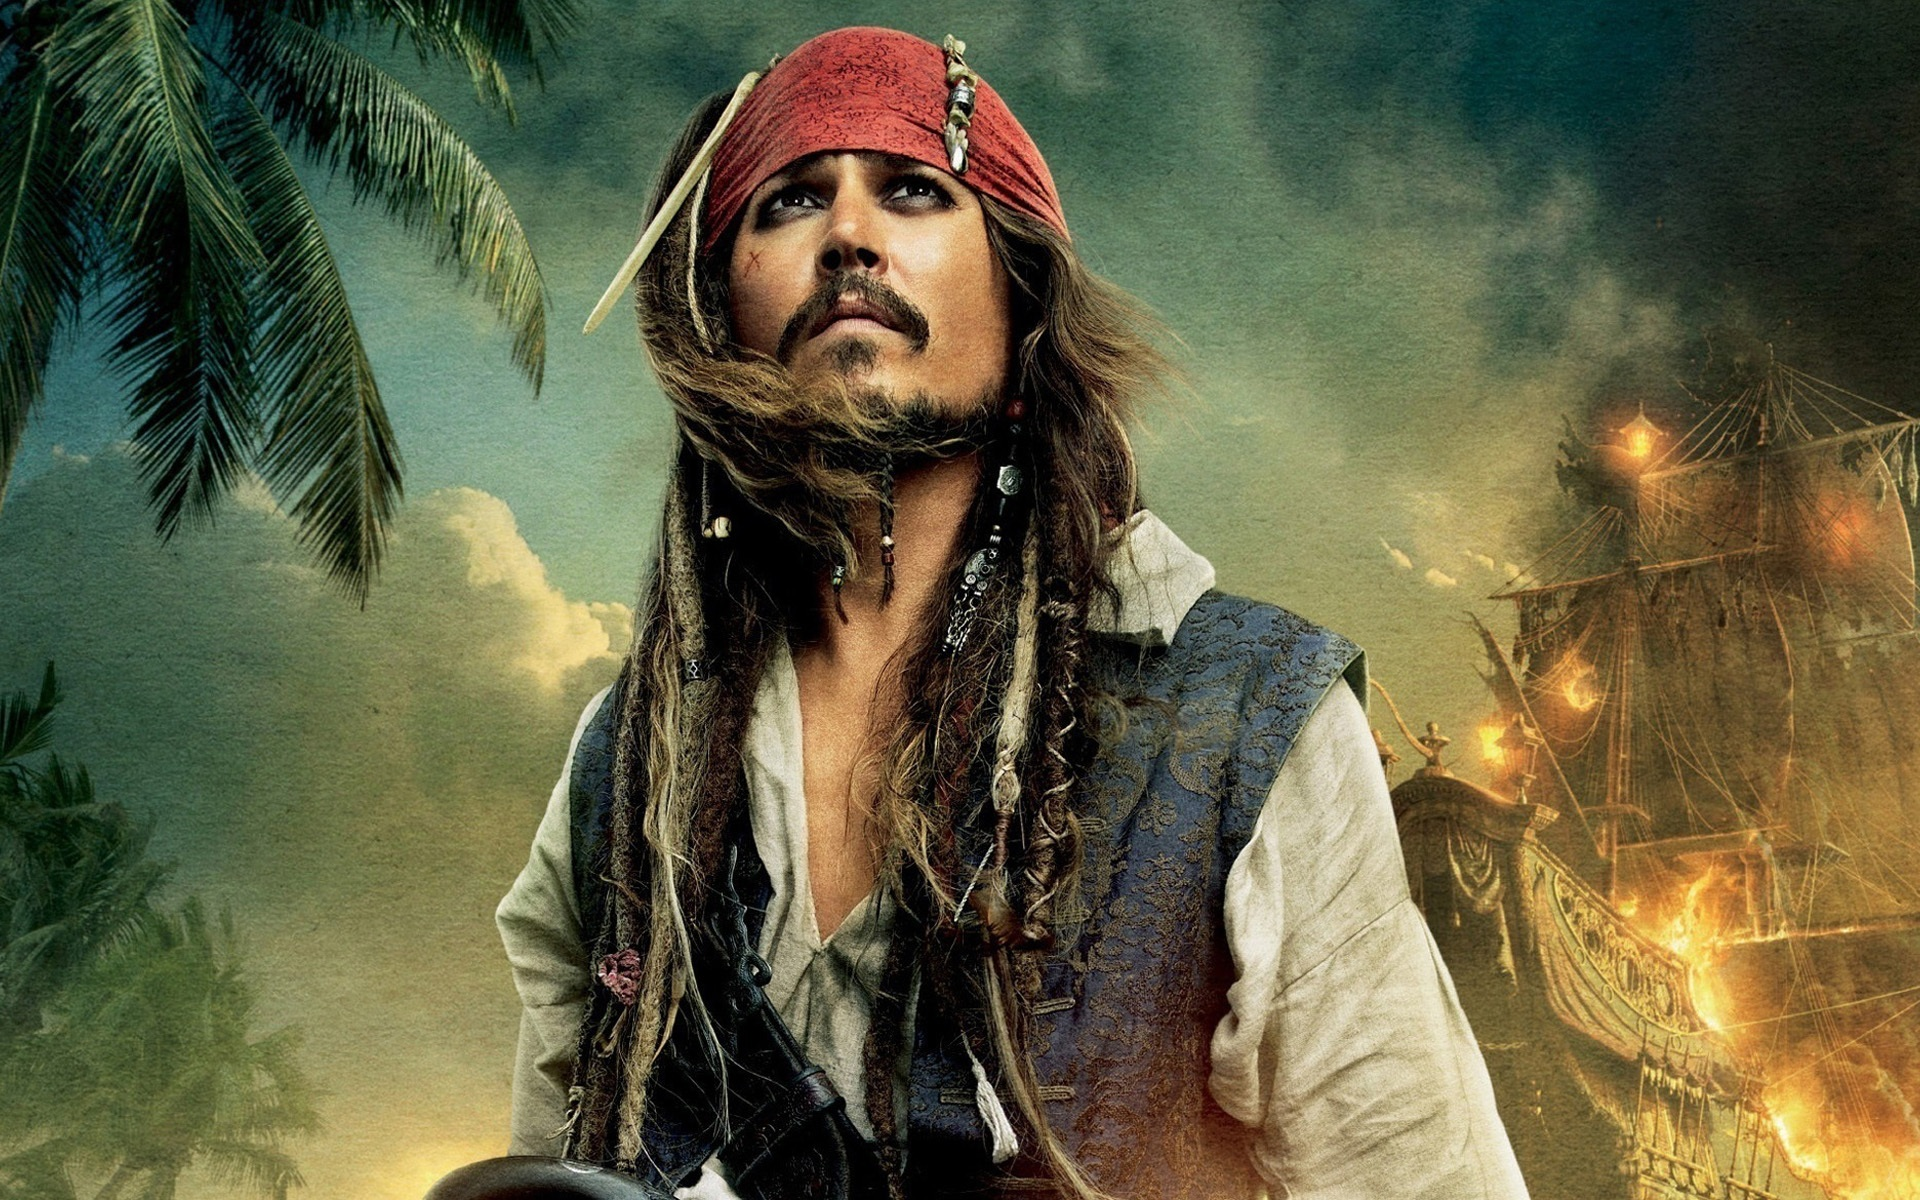 Johnny-Depp-Jack-Sparrow-Pirates-of-the-Caribbean_1920x1200